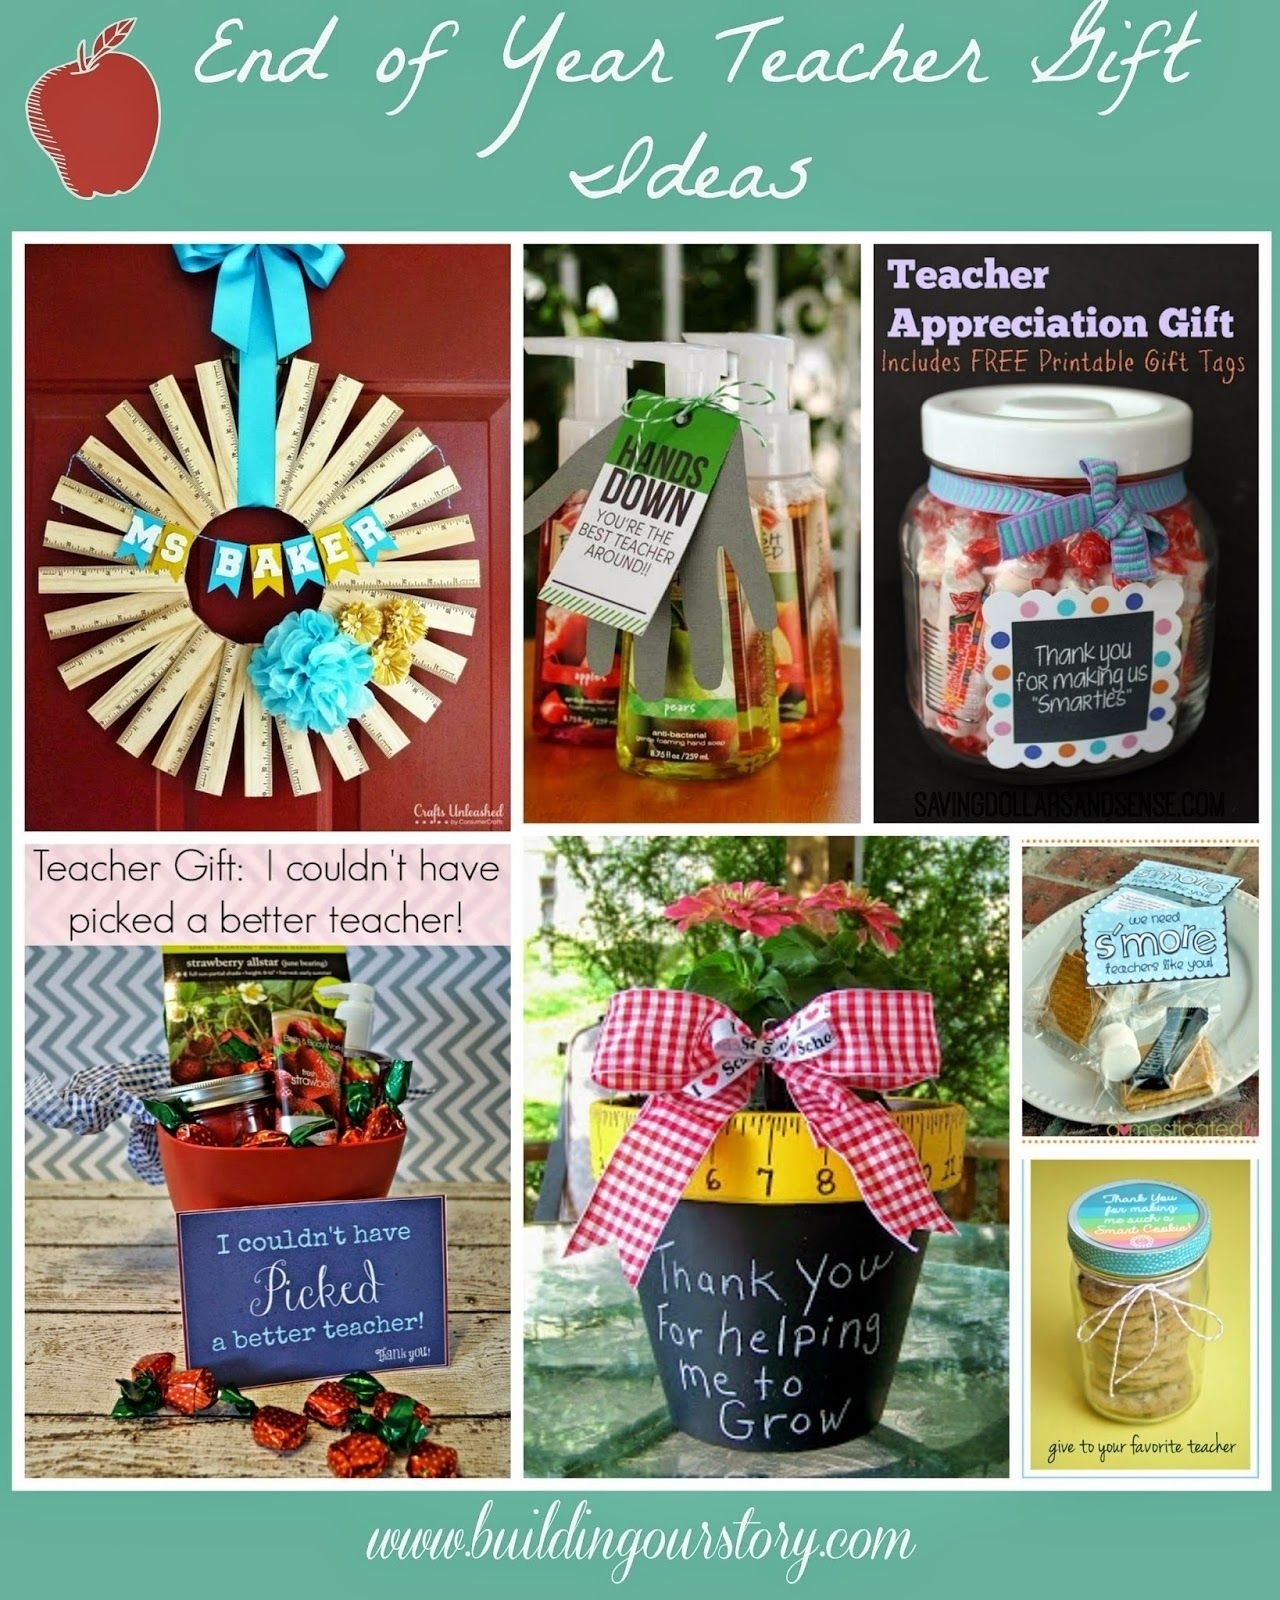 10 Fashionable Ideas For End Of Year Teacher Gifts end of the year teacher gift diy ideas juin